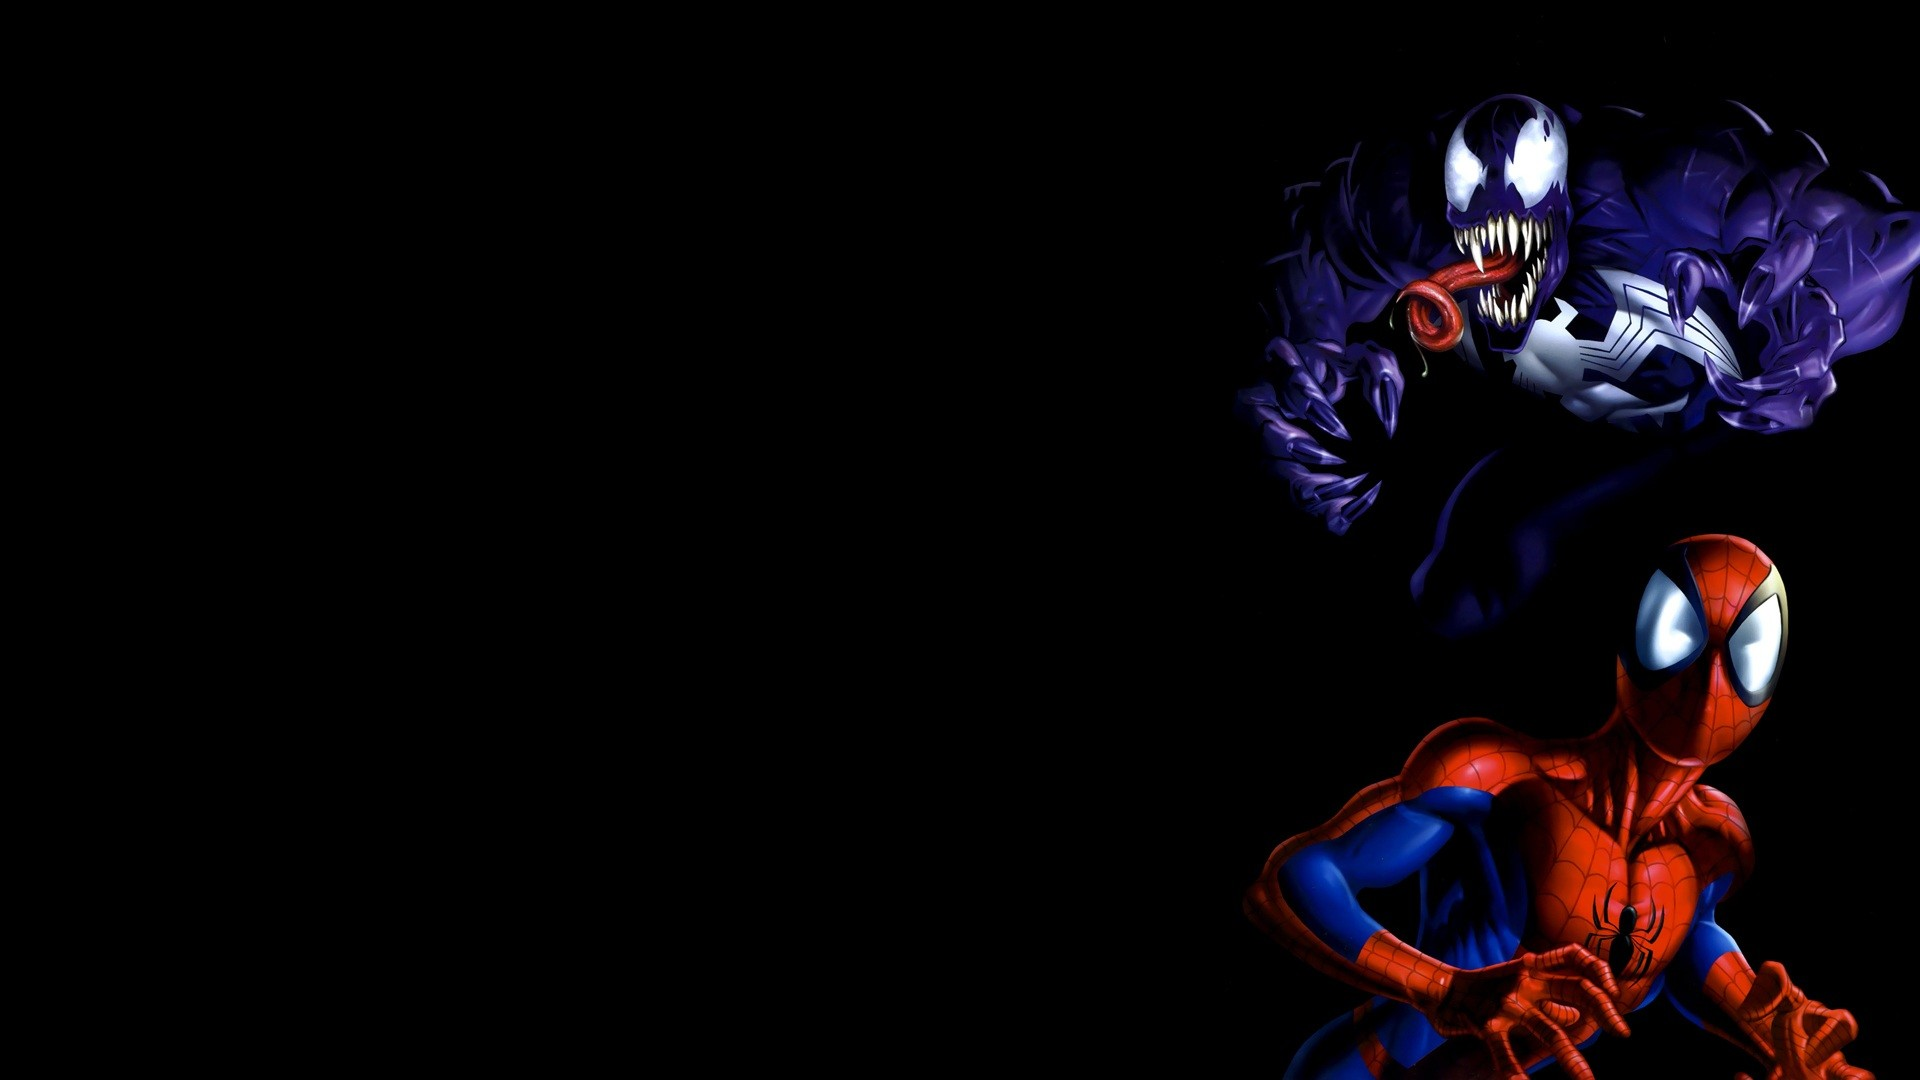 Good Wallpaper Mac Spiderman - 970988-spiderman-cartoon-wallpaper-1920x1080-for-desktop  Collection_263553.jpg